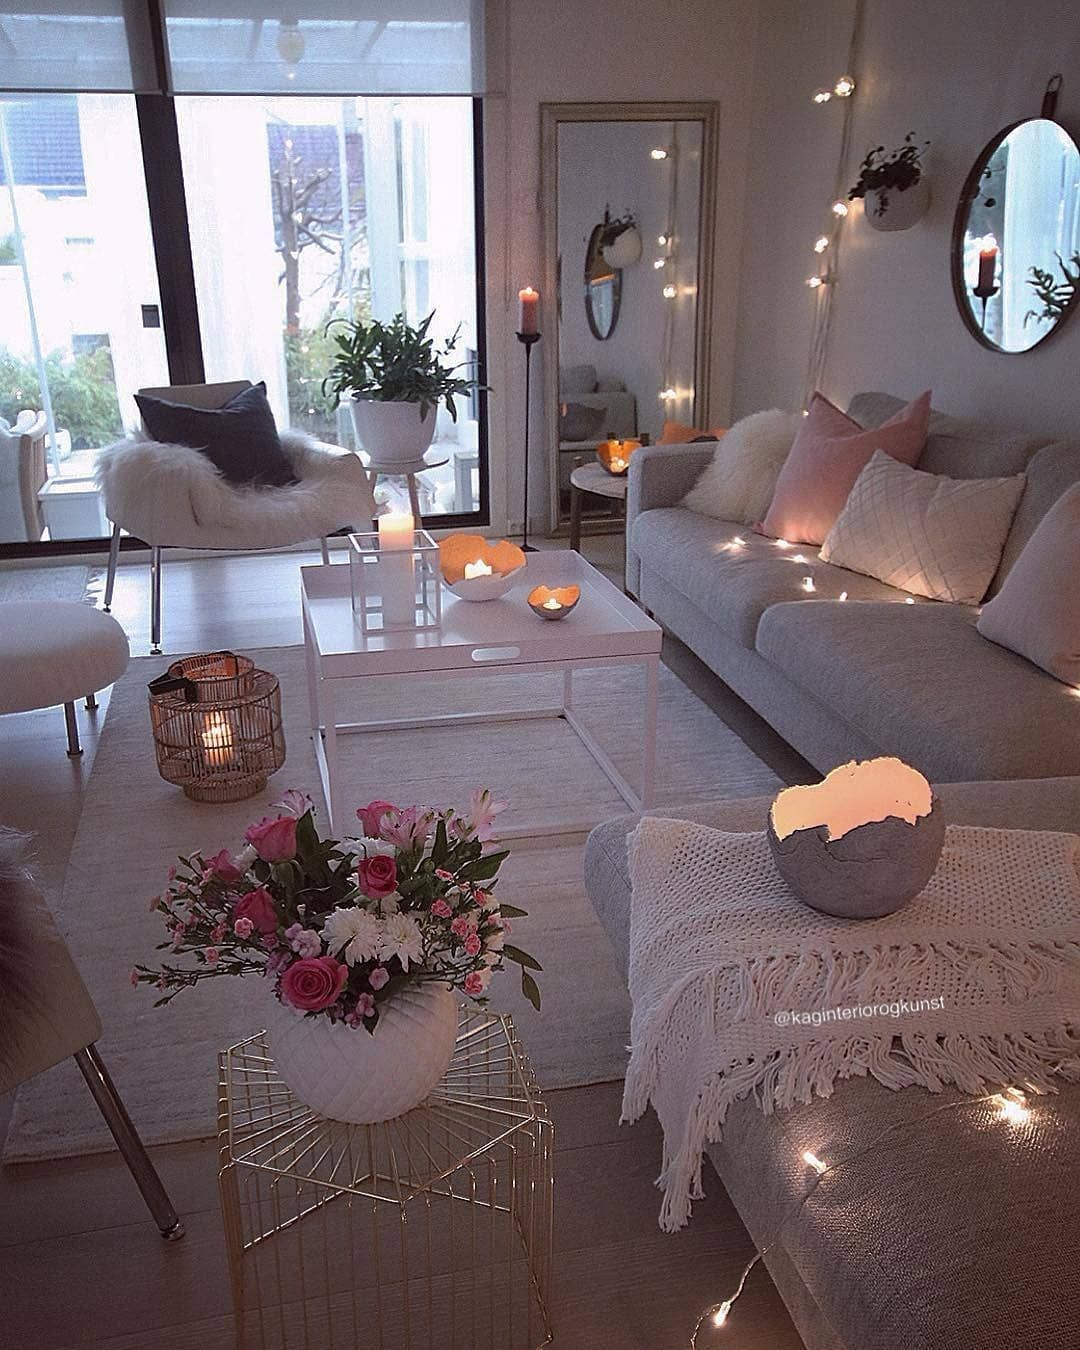 What A Cosy And Intimate Space Rustic Living Room Living Room Designs Living Room Decor